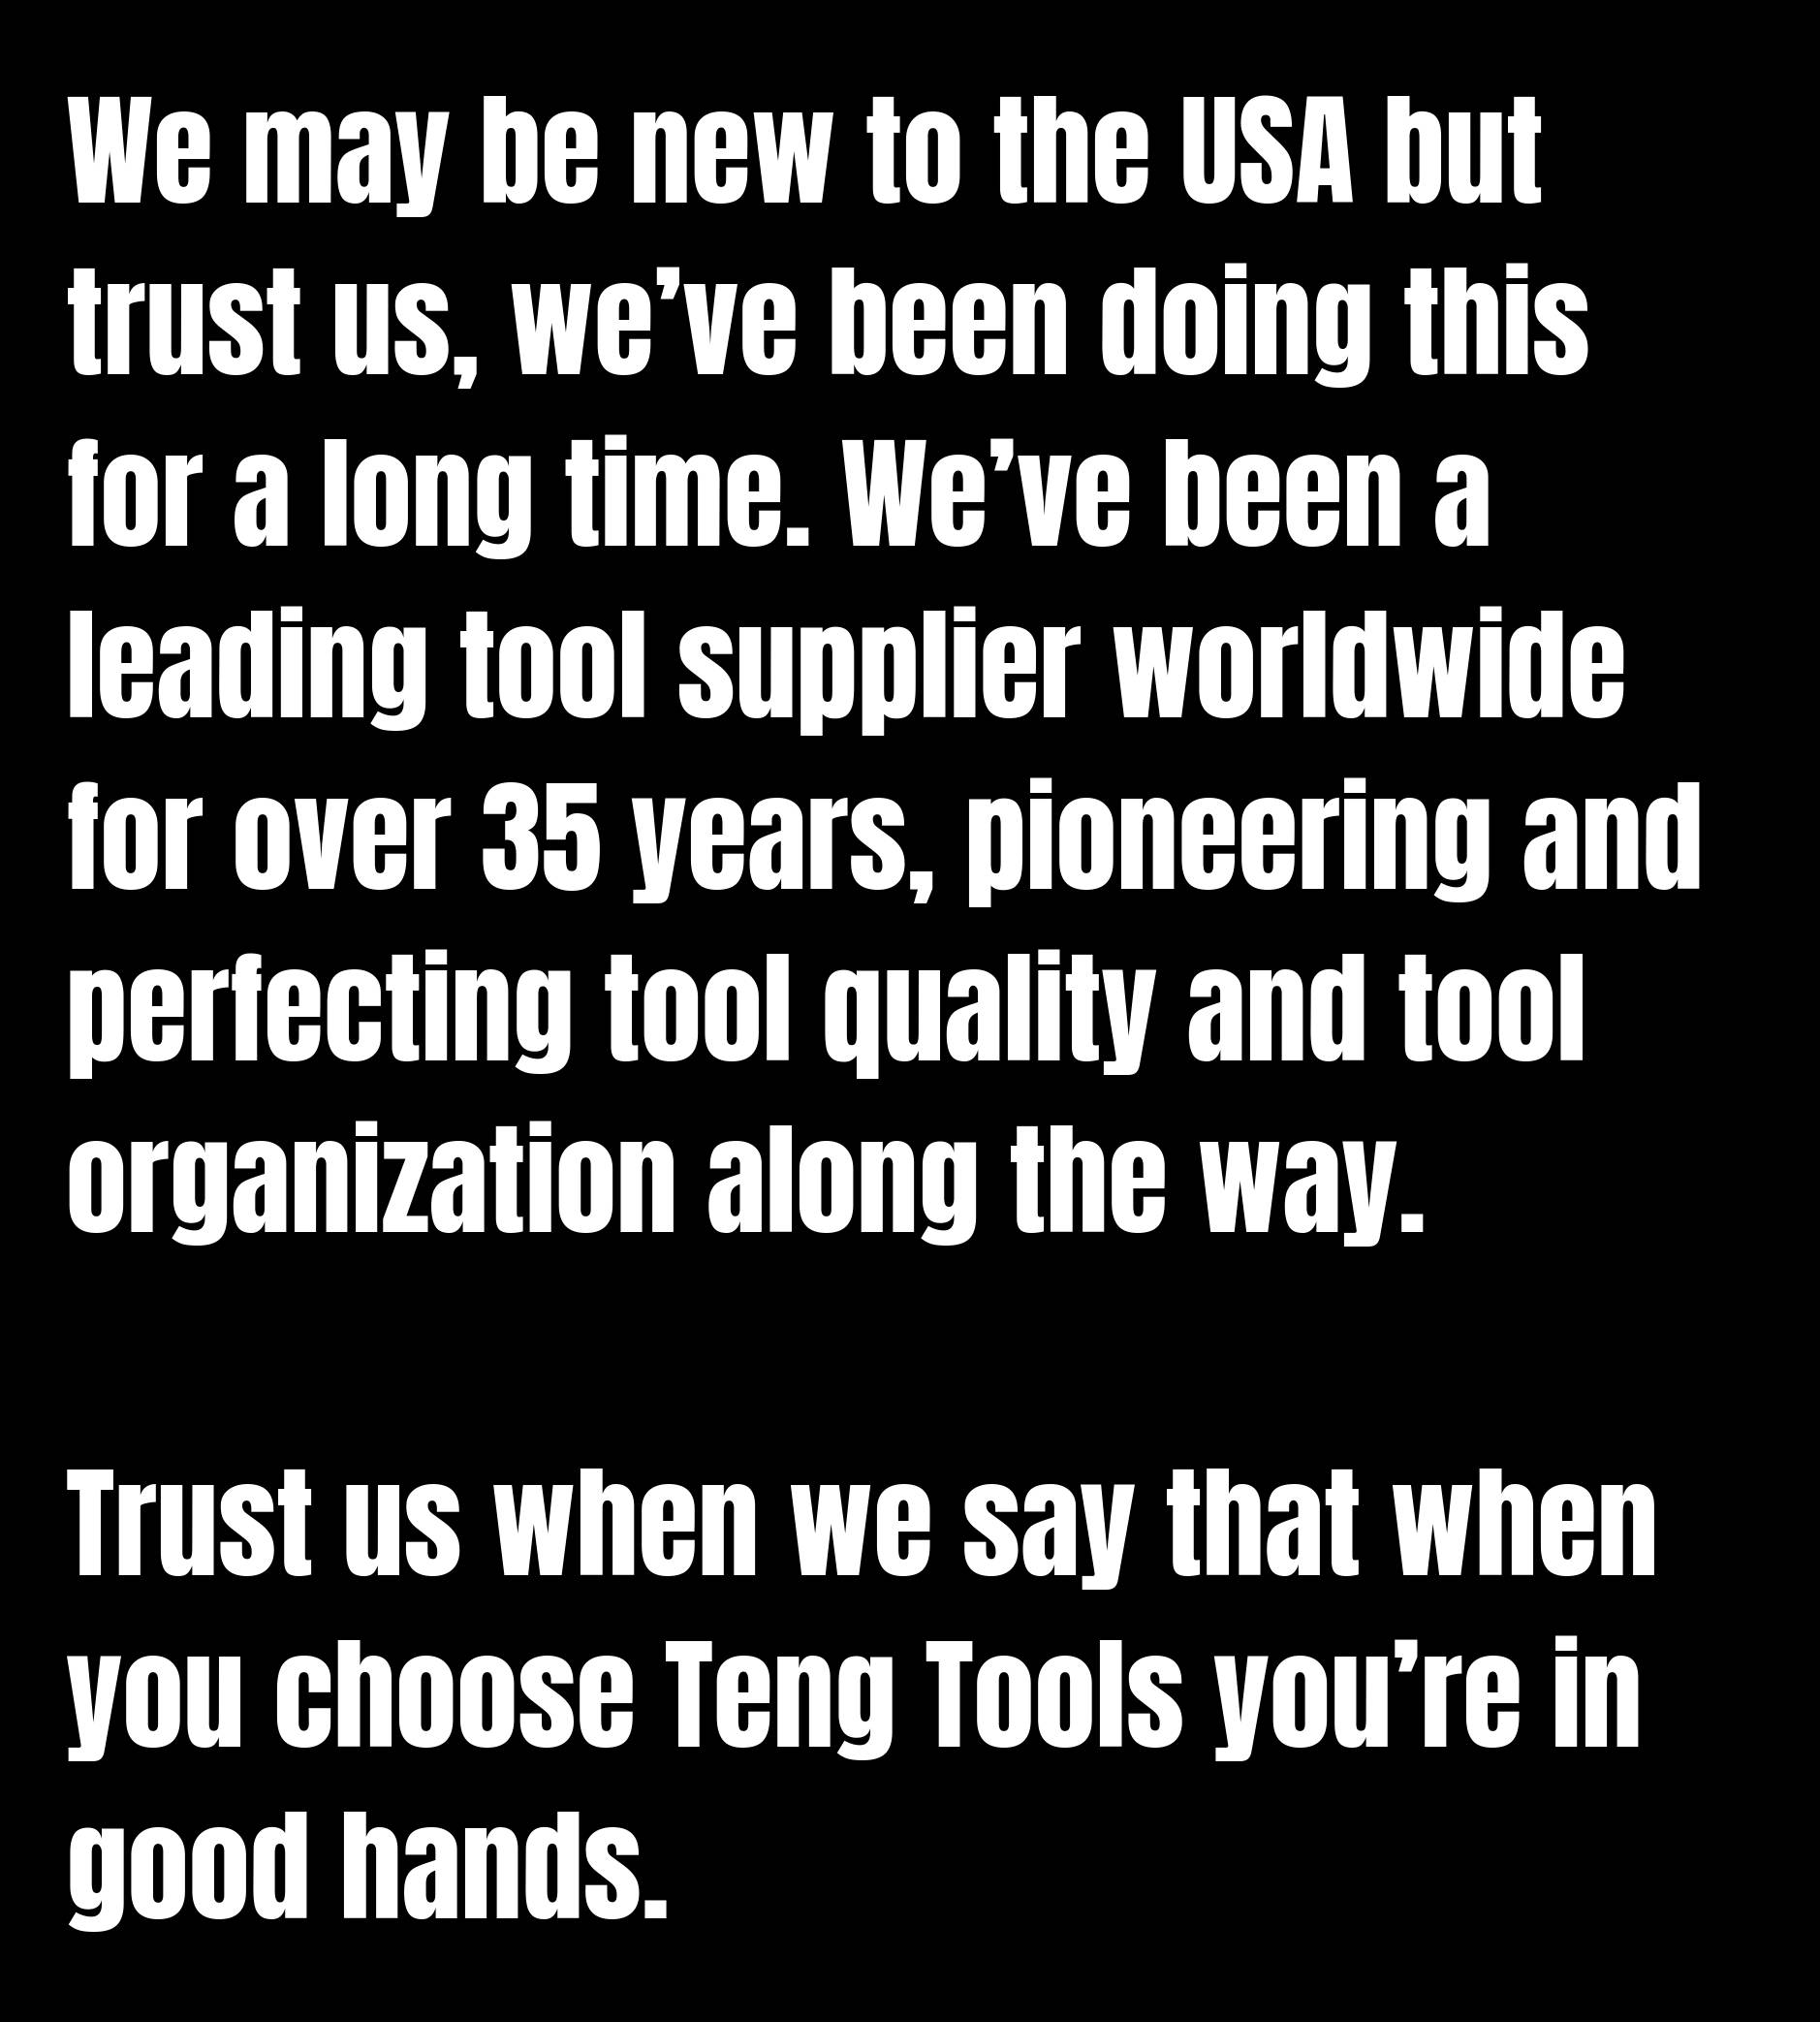 We may be new to the USA but trust us, we've been doing this for a long time. We've been a leading tool supplier worldwide for over 35 years, pioneering and perfecting tool quality and tool organization along the way. Trust us when we say that when you choose Teng Tools you're in good hands.